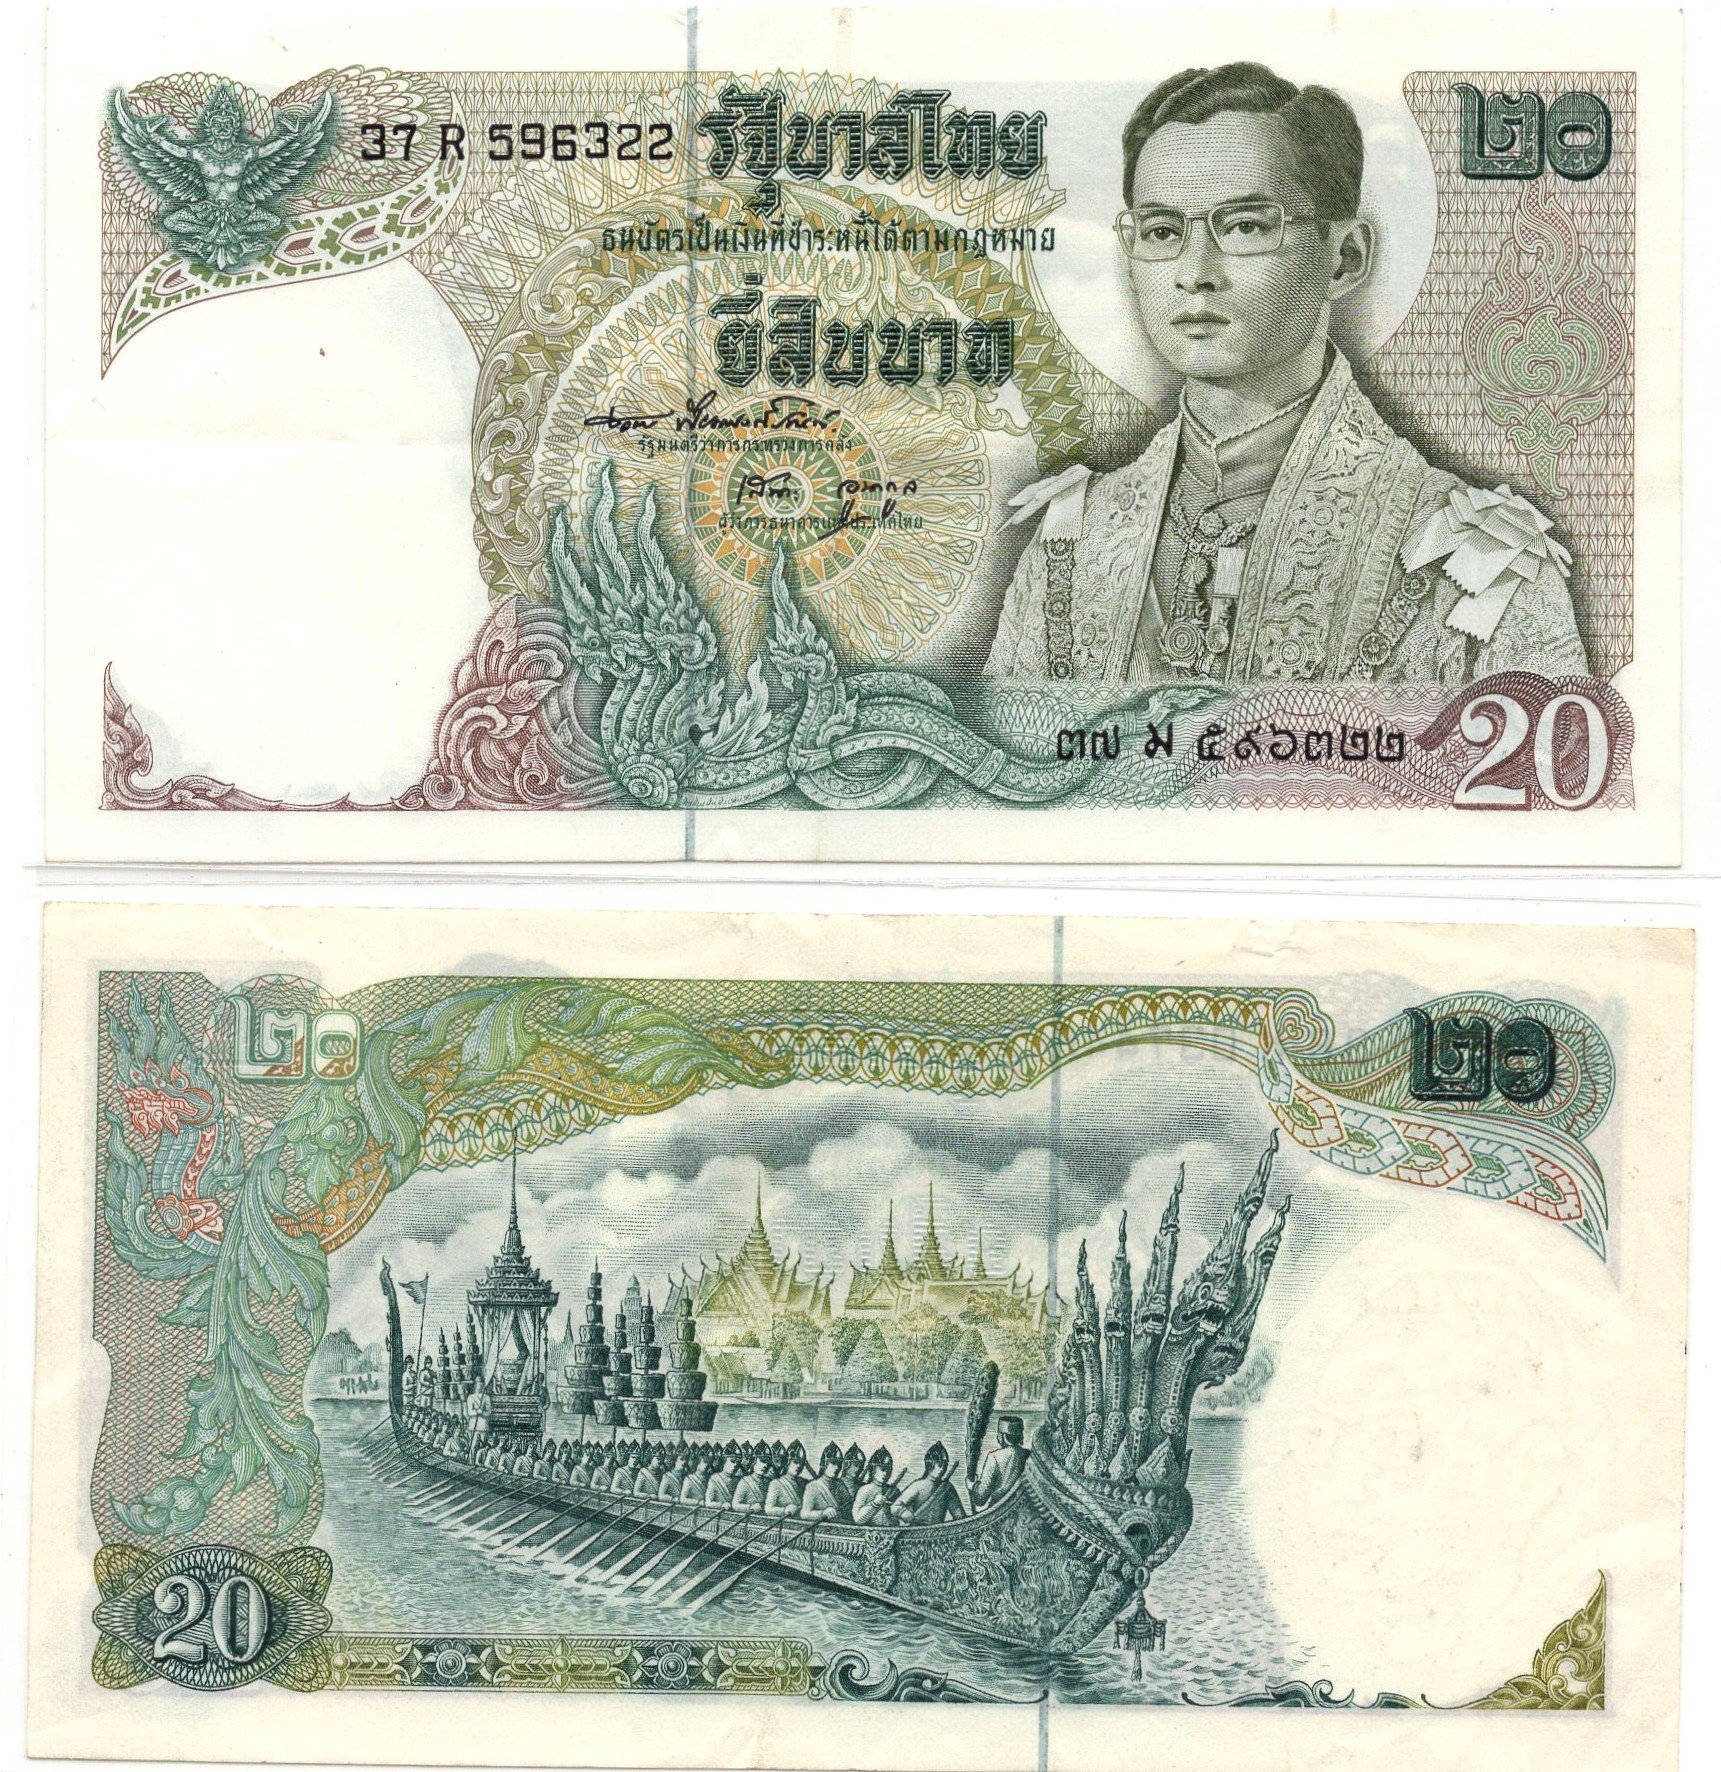 Thailand 20 baht banknote for sale